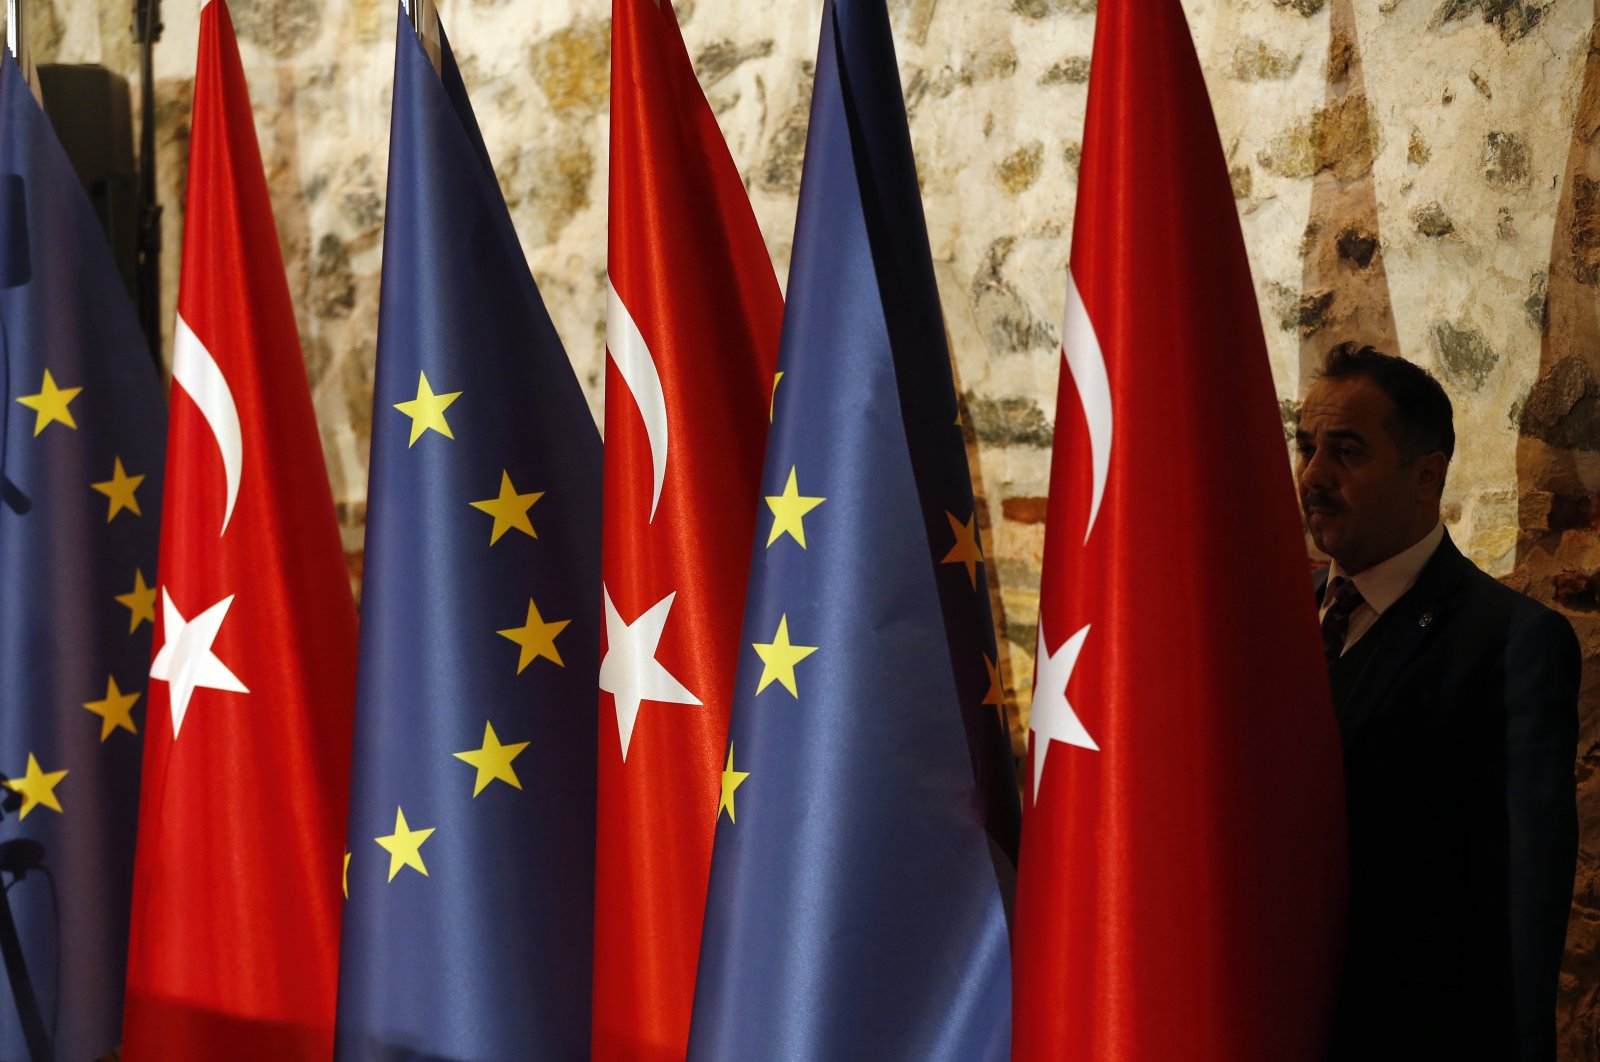 An official adjusts Turkey's and European flags prior to the opening session of a high-level meeting between EU and Turkey, Feb. 28, 2019. (AP)